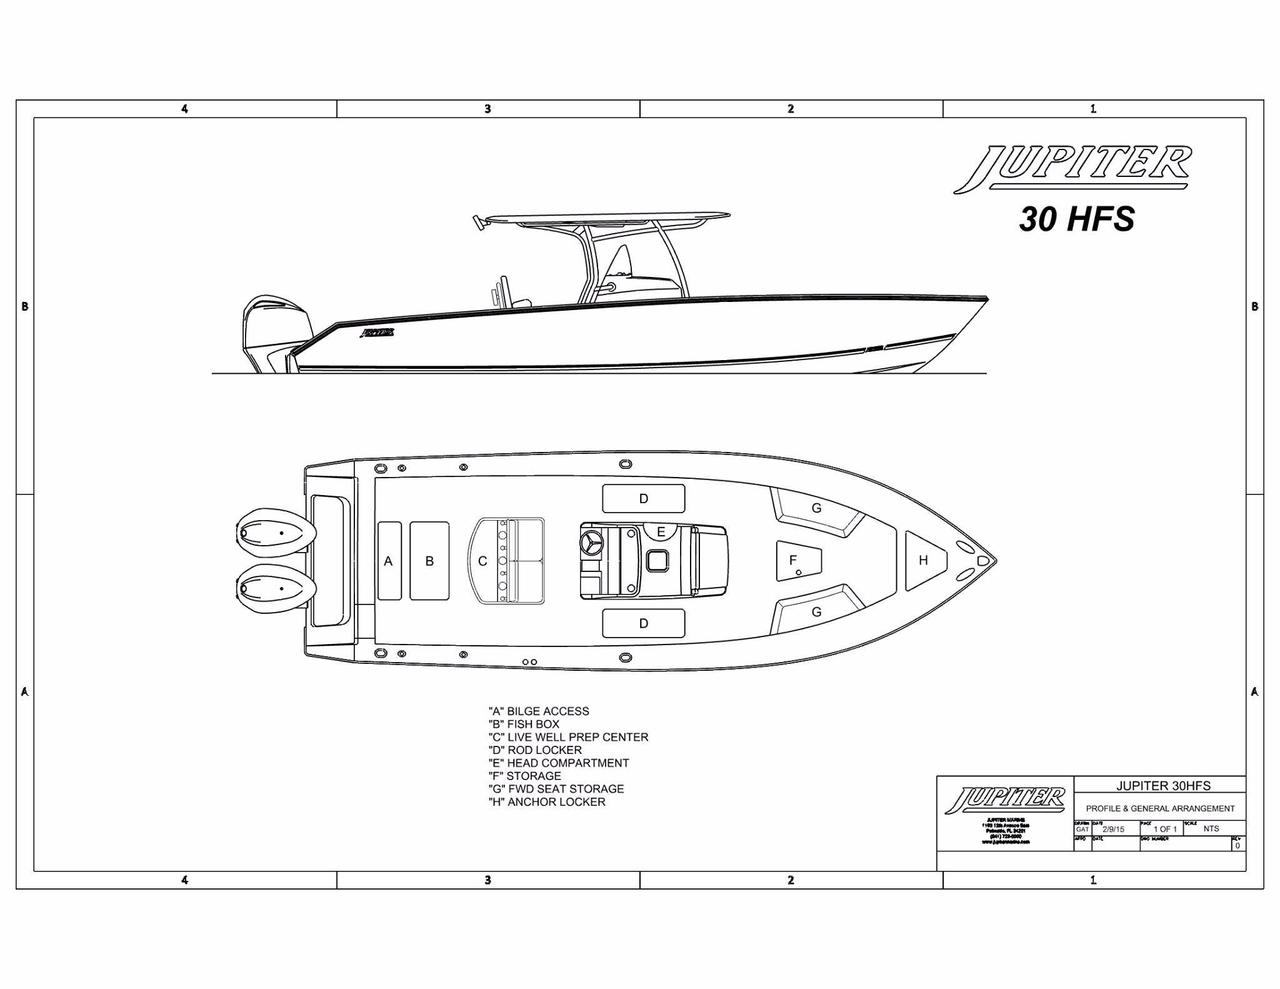 2017 New Jupiter 30 Hfs Center Console Fishing Boat For Sale Saint Marine Wiring Diagram